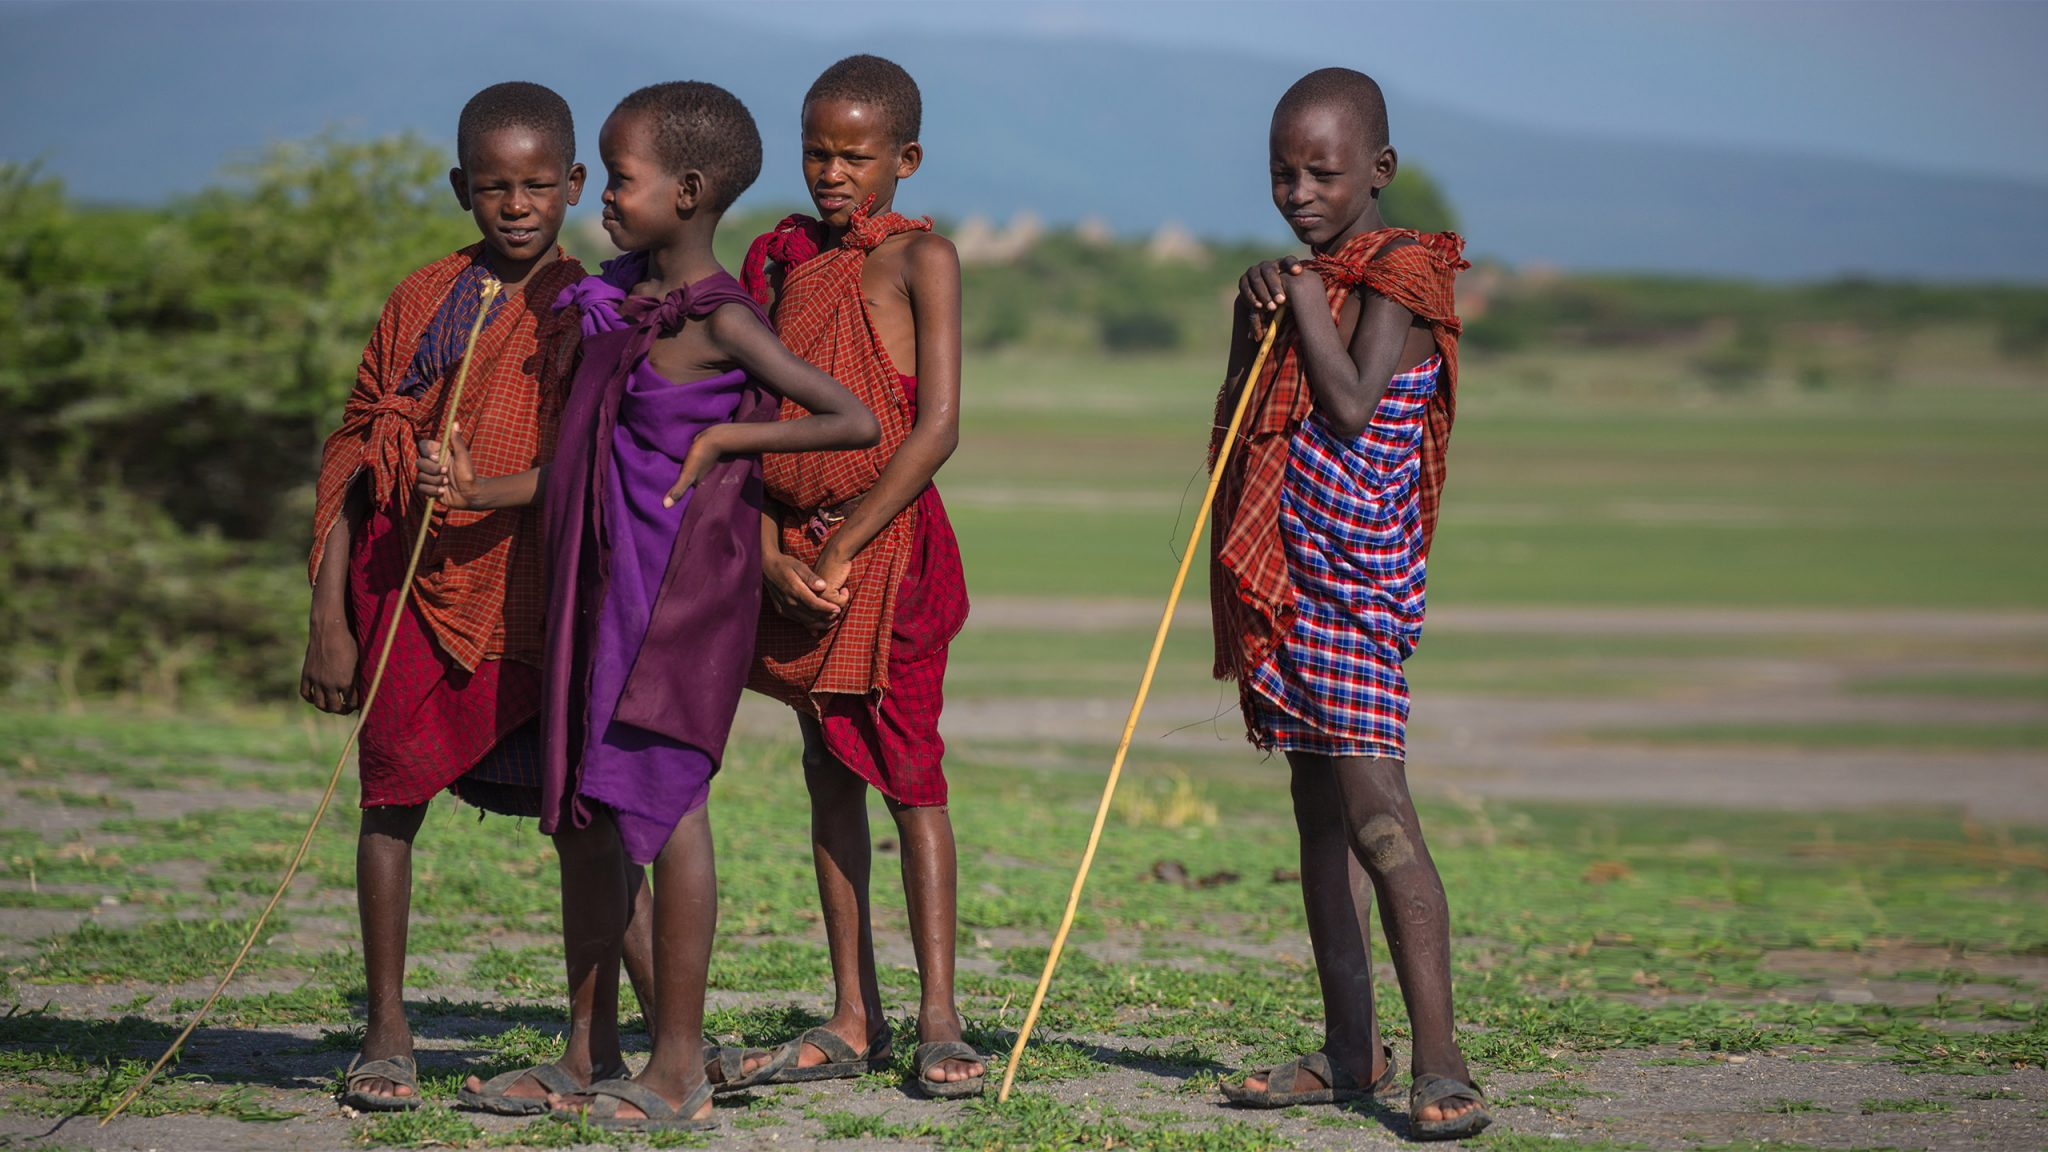 On the fringes of a dried-up lake, We encountered these four boys who were herding cattle. Even though they were young, In some families, these boys will take responsibility for all of the families' precious livestock.